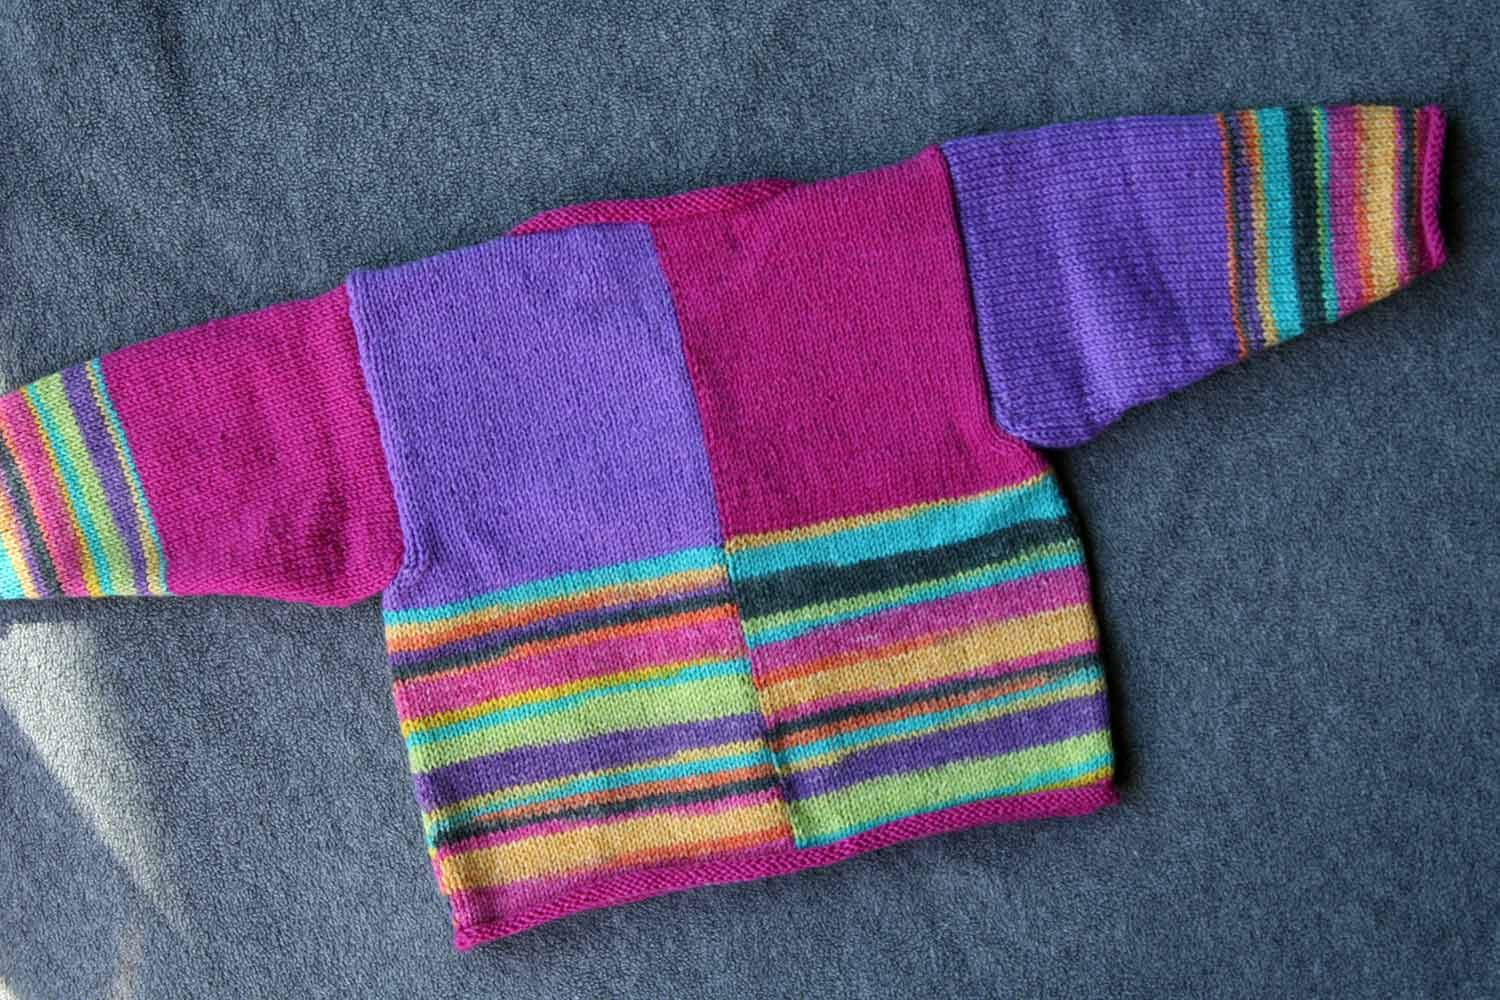 Back of Lucy cardigan with intarsia blocks of colour and self-patterning yarn.